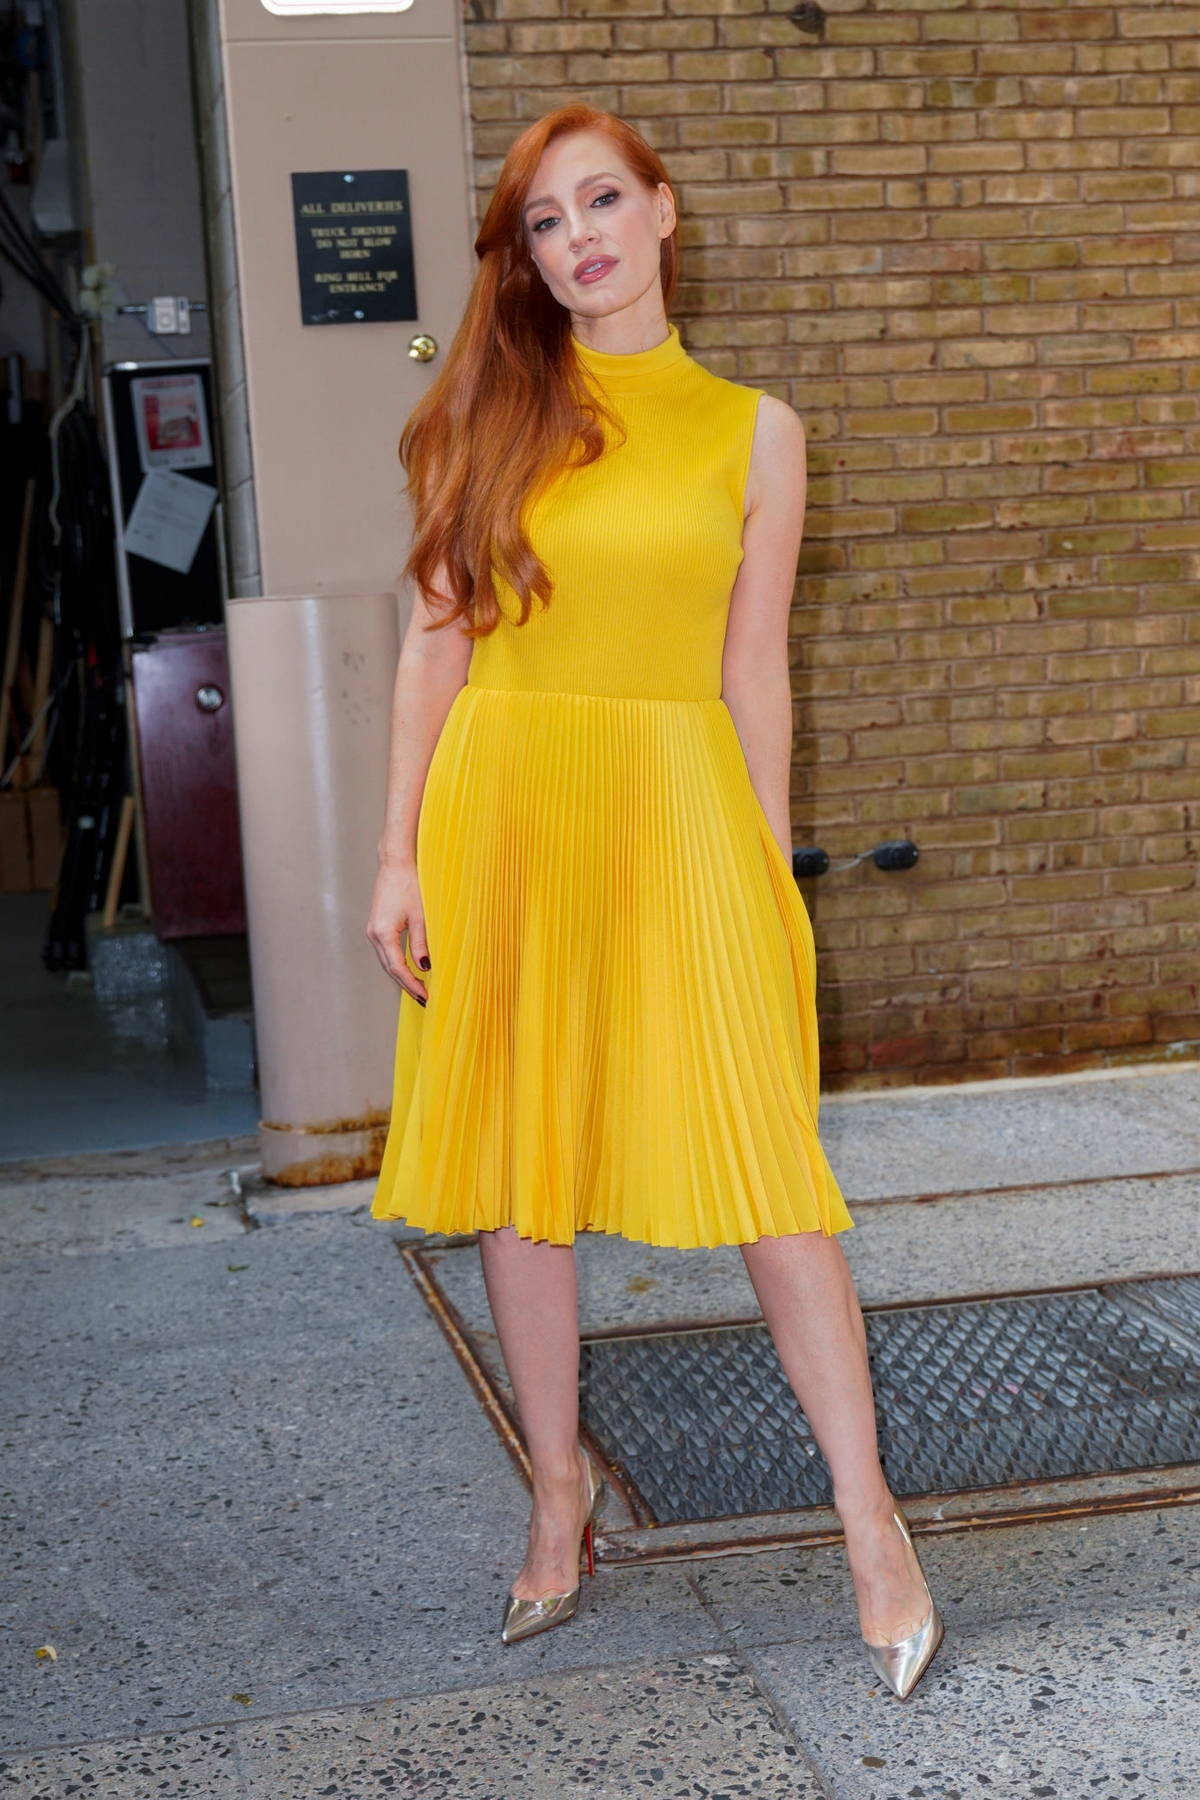 Jessica Chastain looks radiant in a yellow dress while stepping out in Soho, New York City